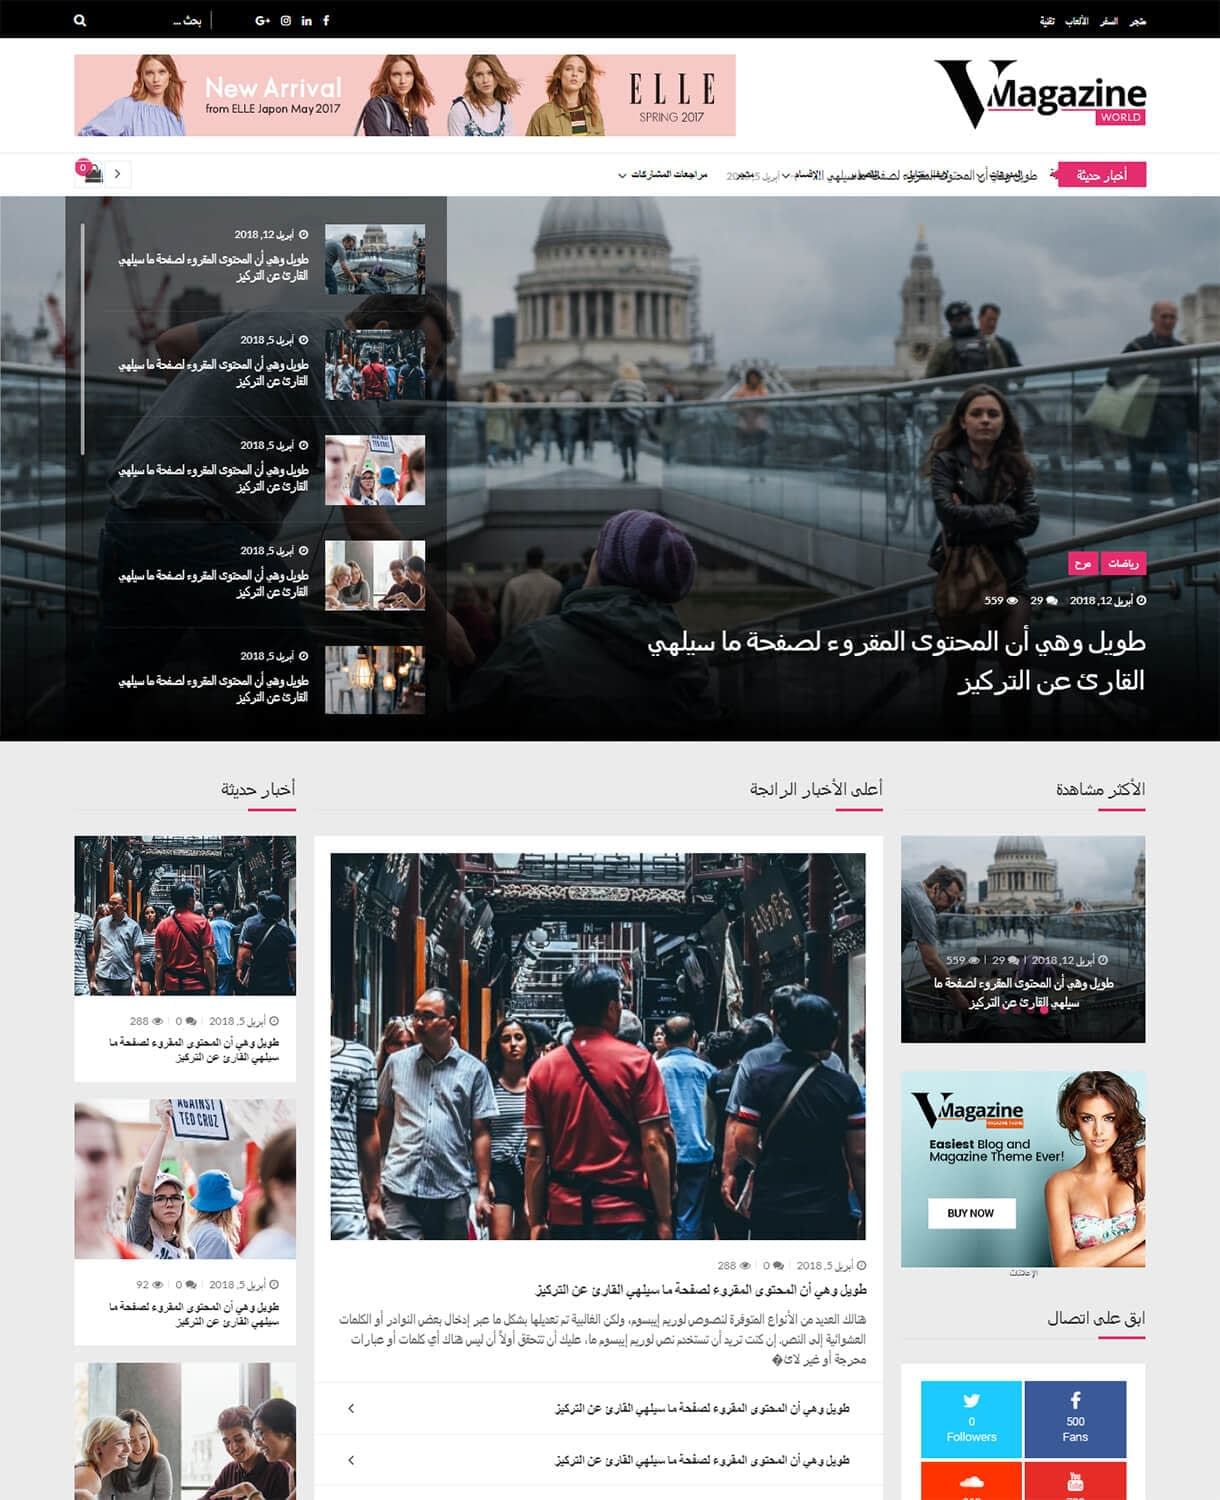 rtl demo vmagazine - VMagazine Review - A hassle free, simple, clean and beautiful WordPress theme to start your news and magazine website